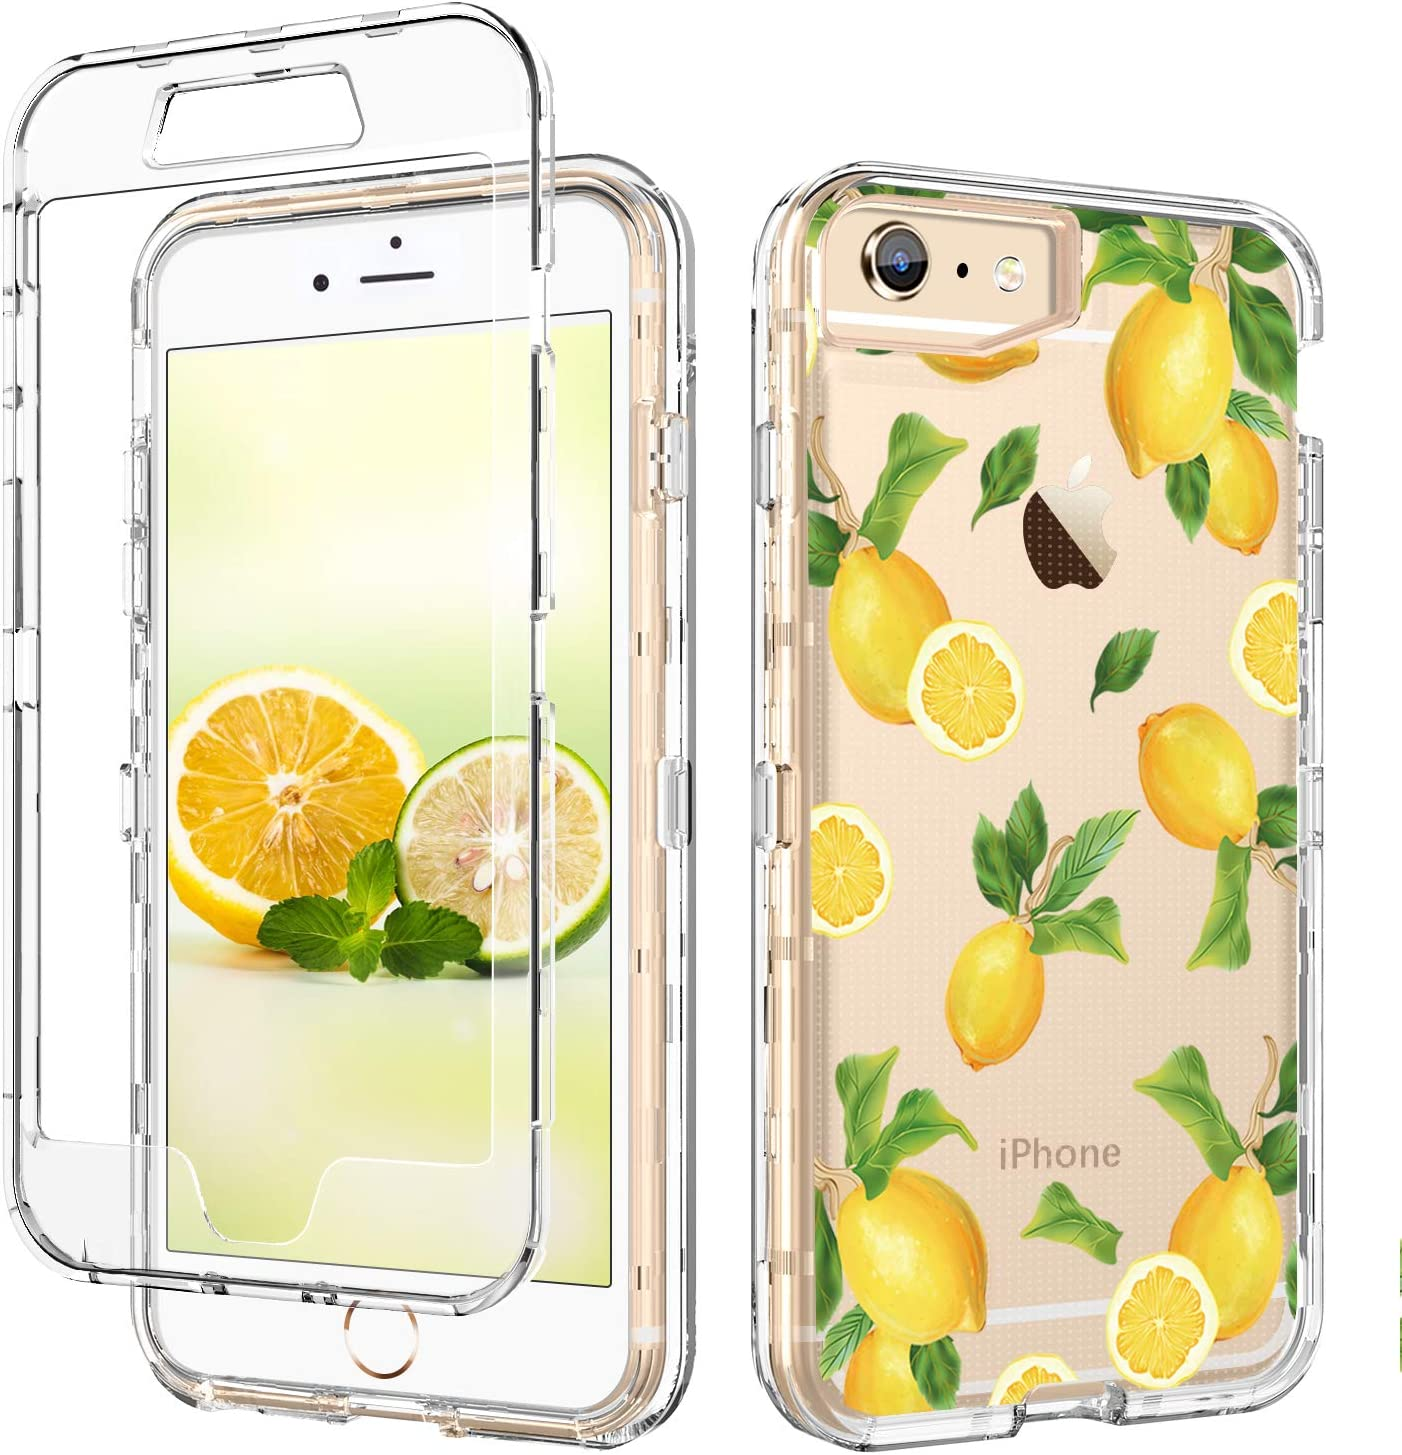 GUAGUA iPhone 6S Plus Case,iPhone 6 Plus Case Lemon Clear Transparent Cover Fruit Printed Three Layer Hybrid Hard Plastic Soft Rubber Shockproof Protective Phone Case for iPhone 6 Plus/6S Plus,Yellow